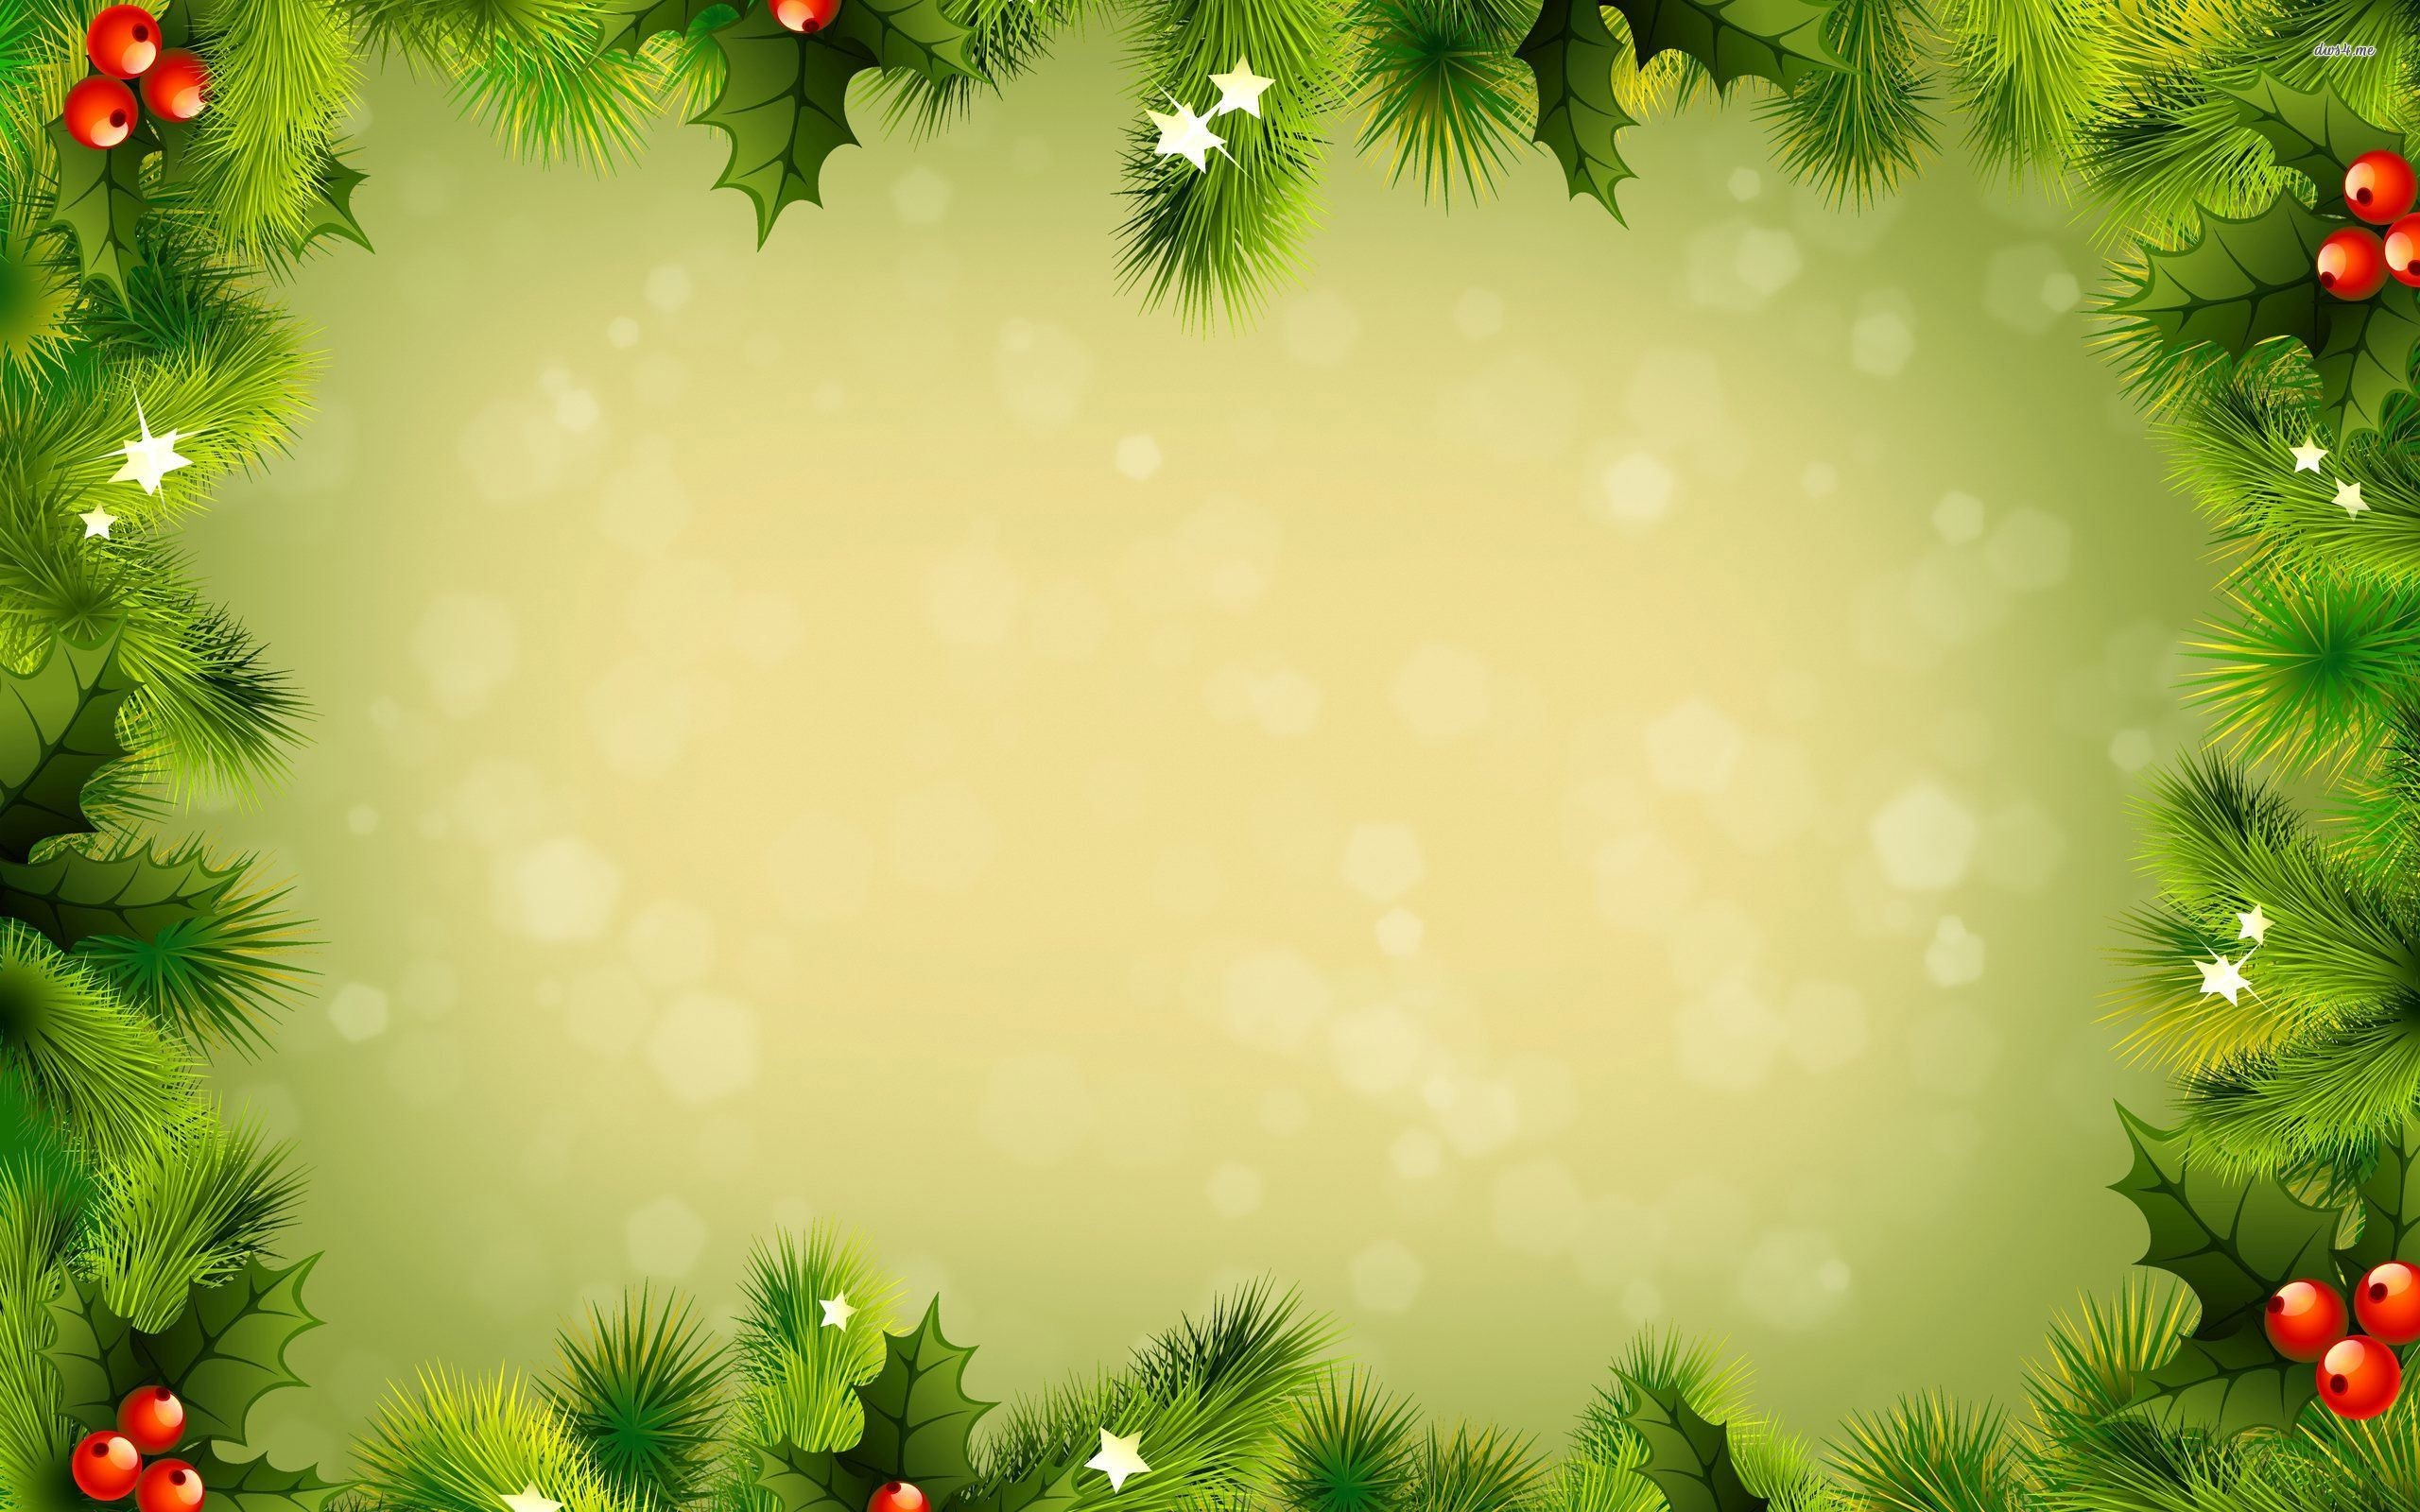 2560x1600 Christmas Wallpaper Hd